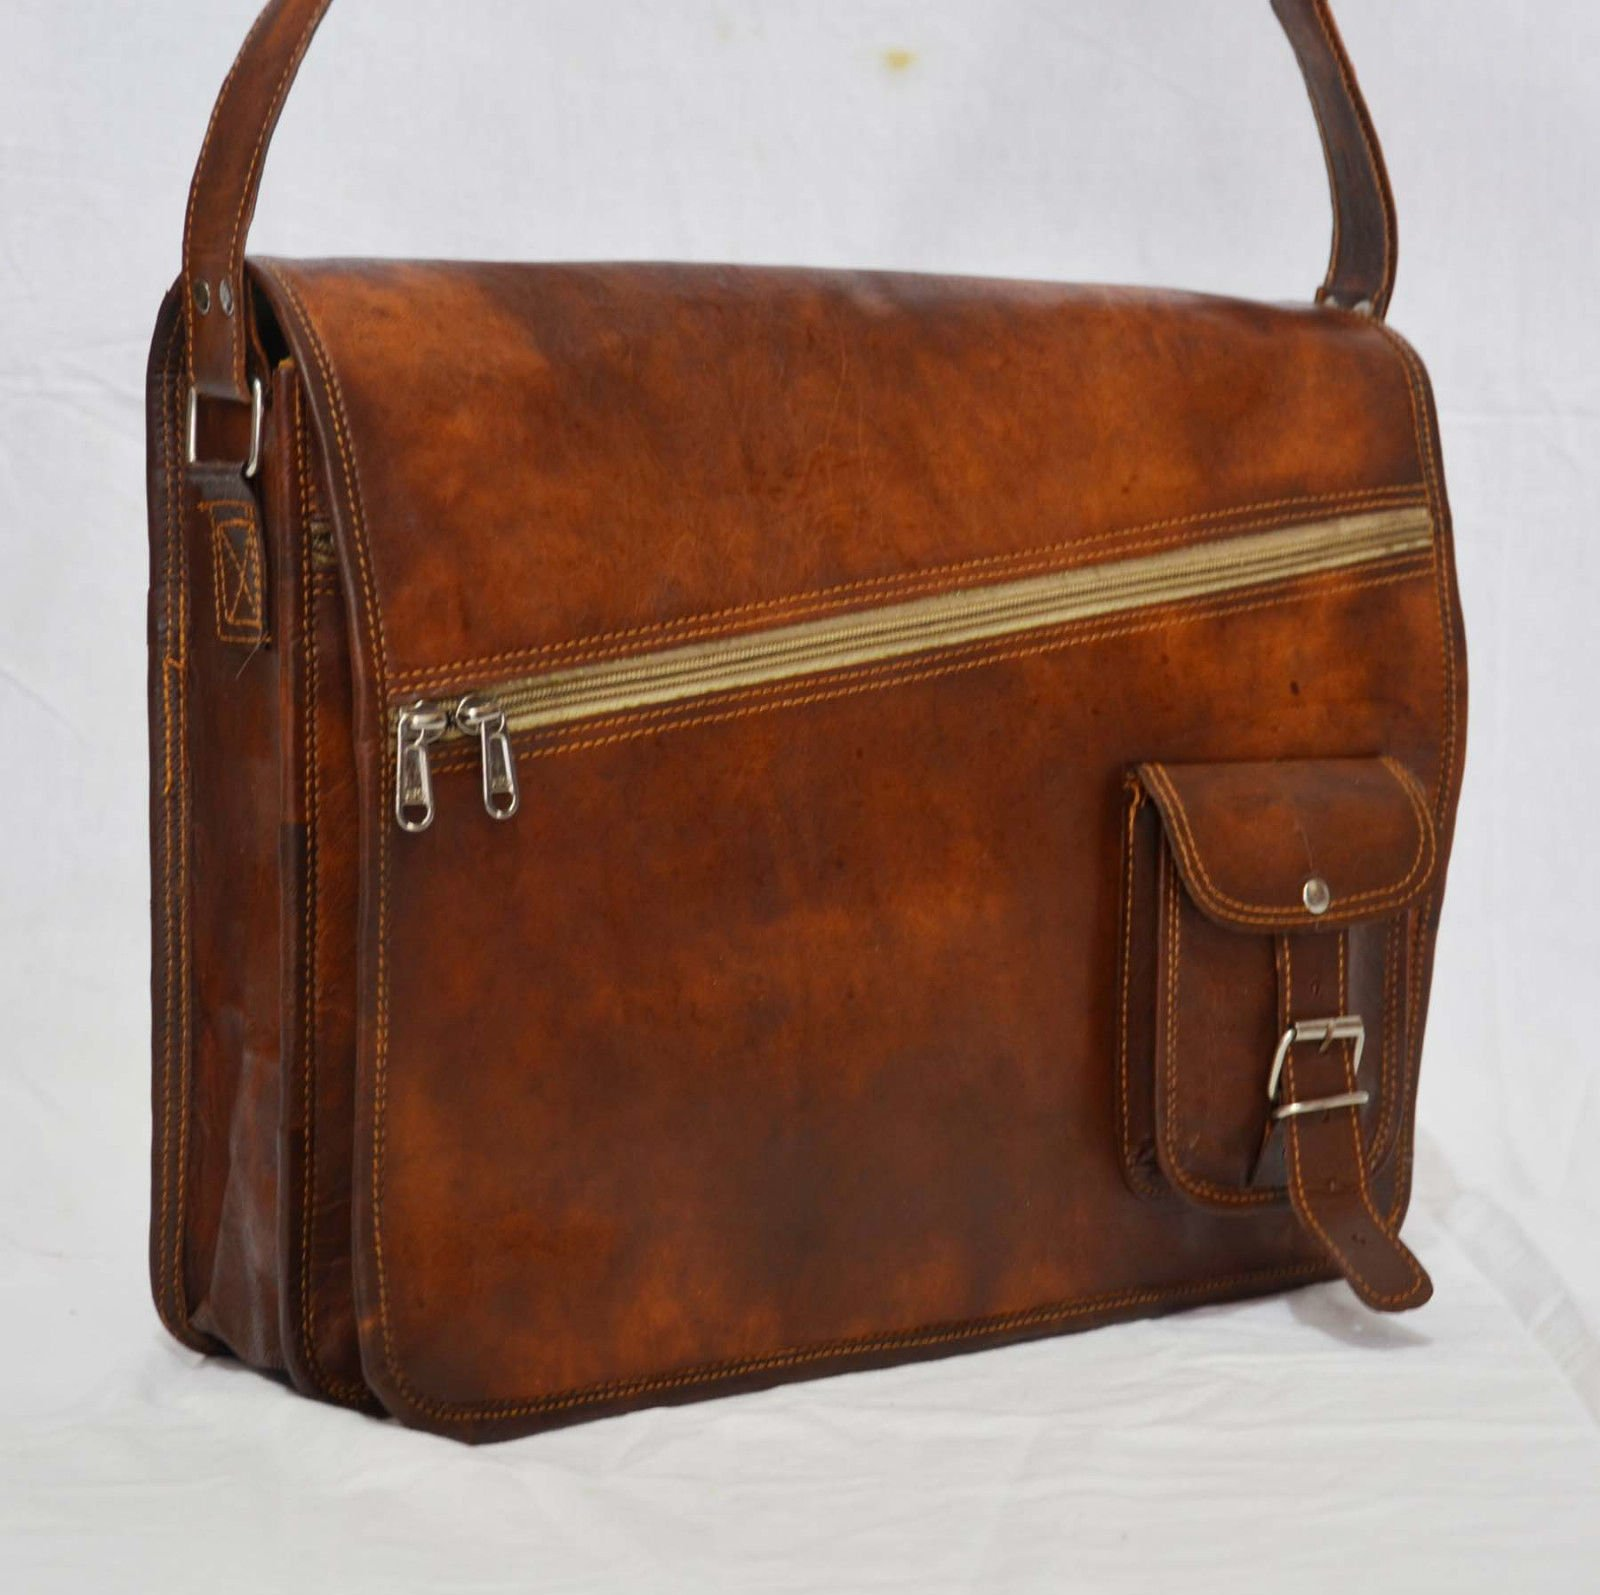 thehandicraftworld Vintage leather messenger Real goat hide satchel bag genuine laptop briefcase